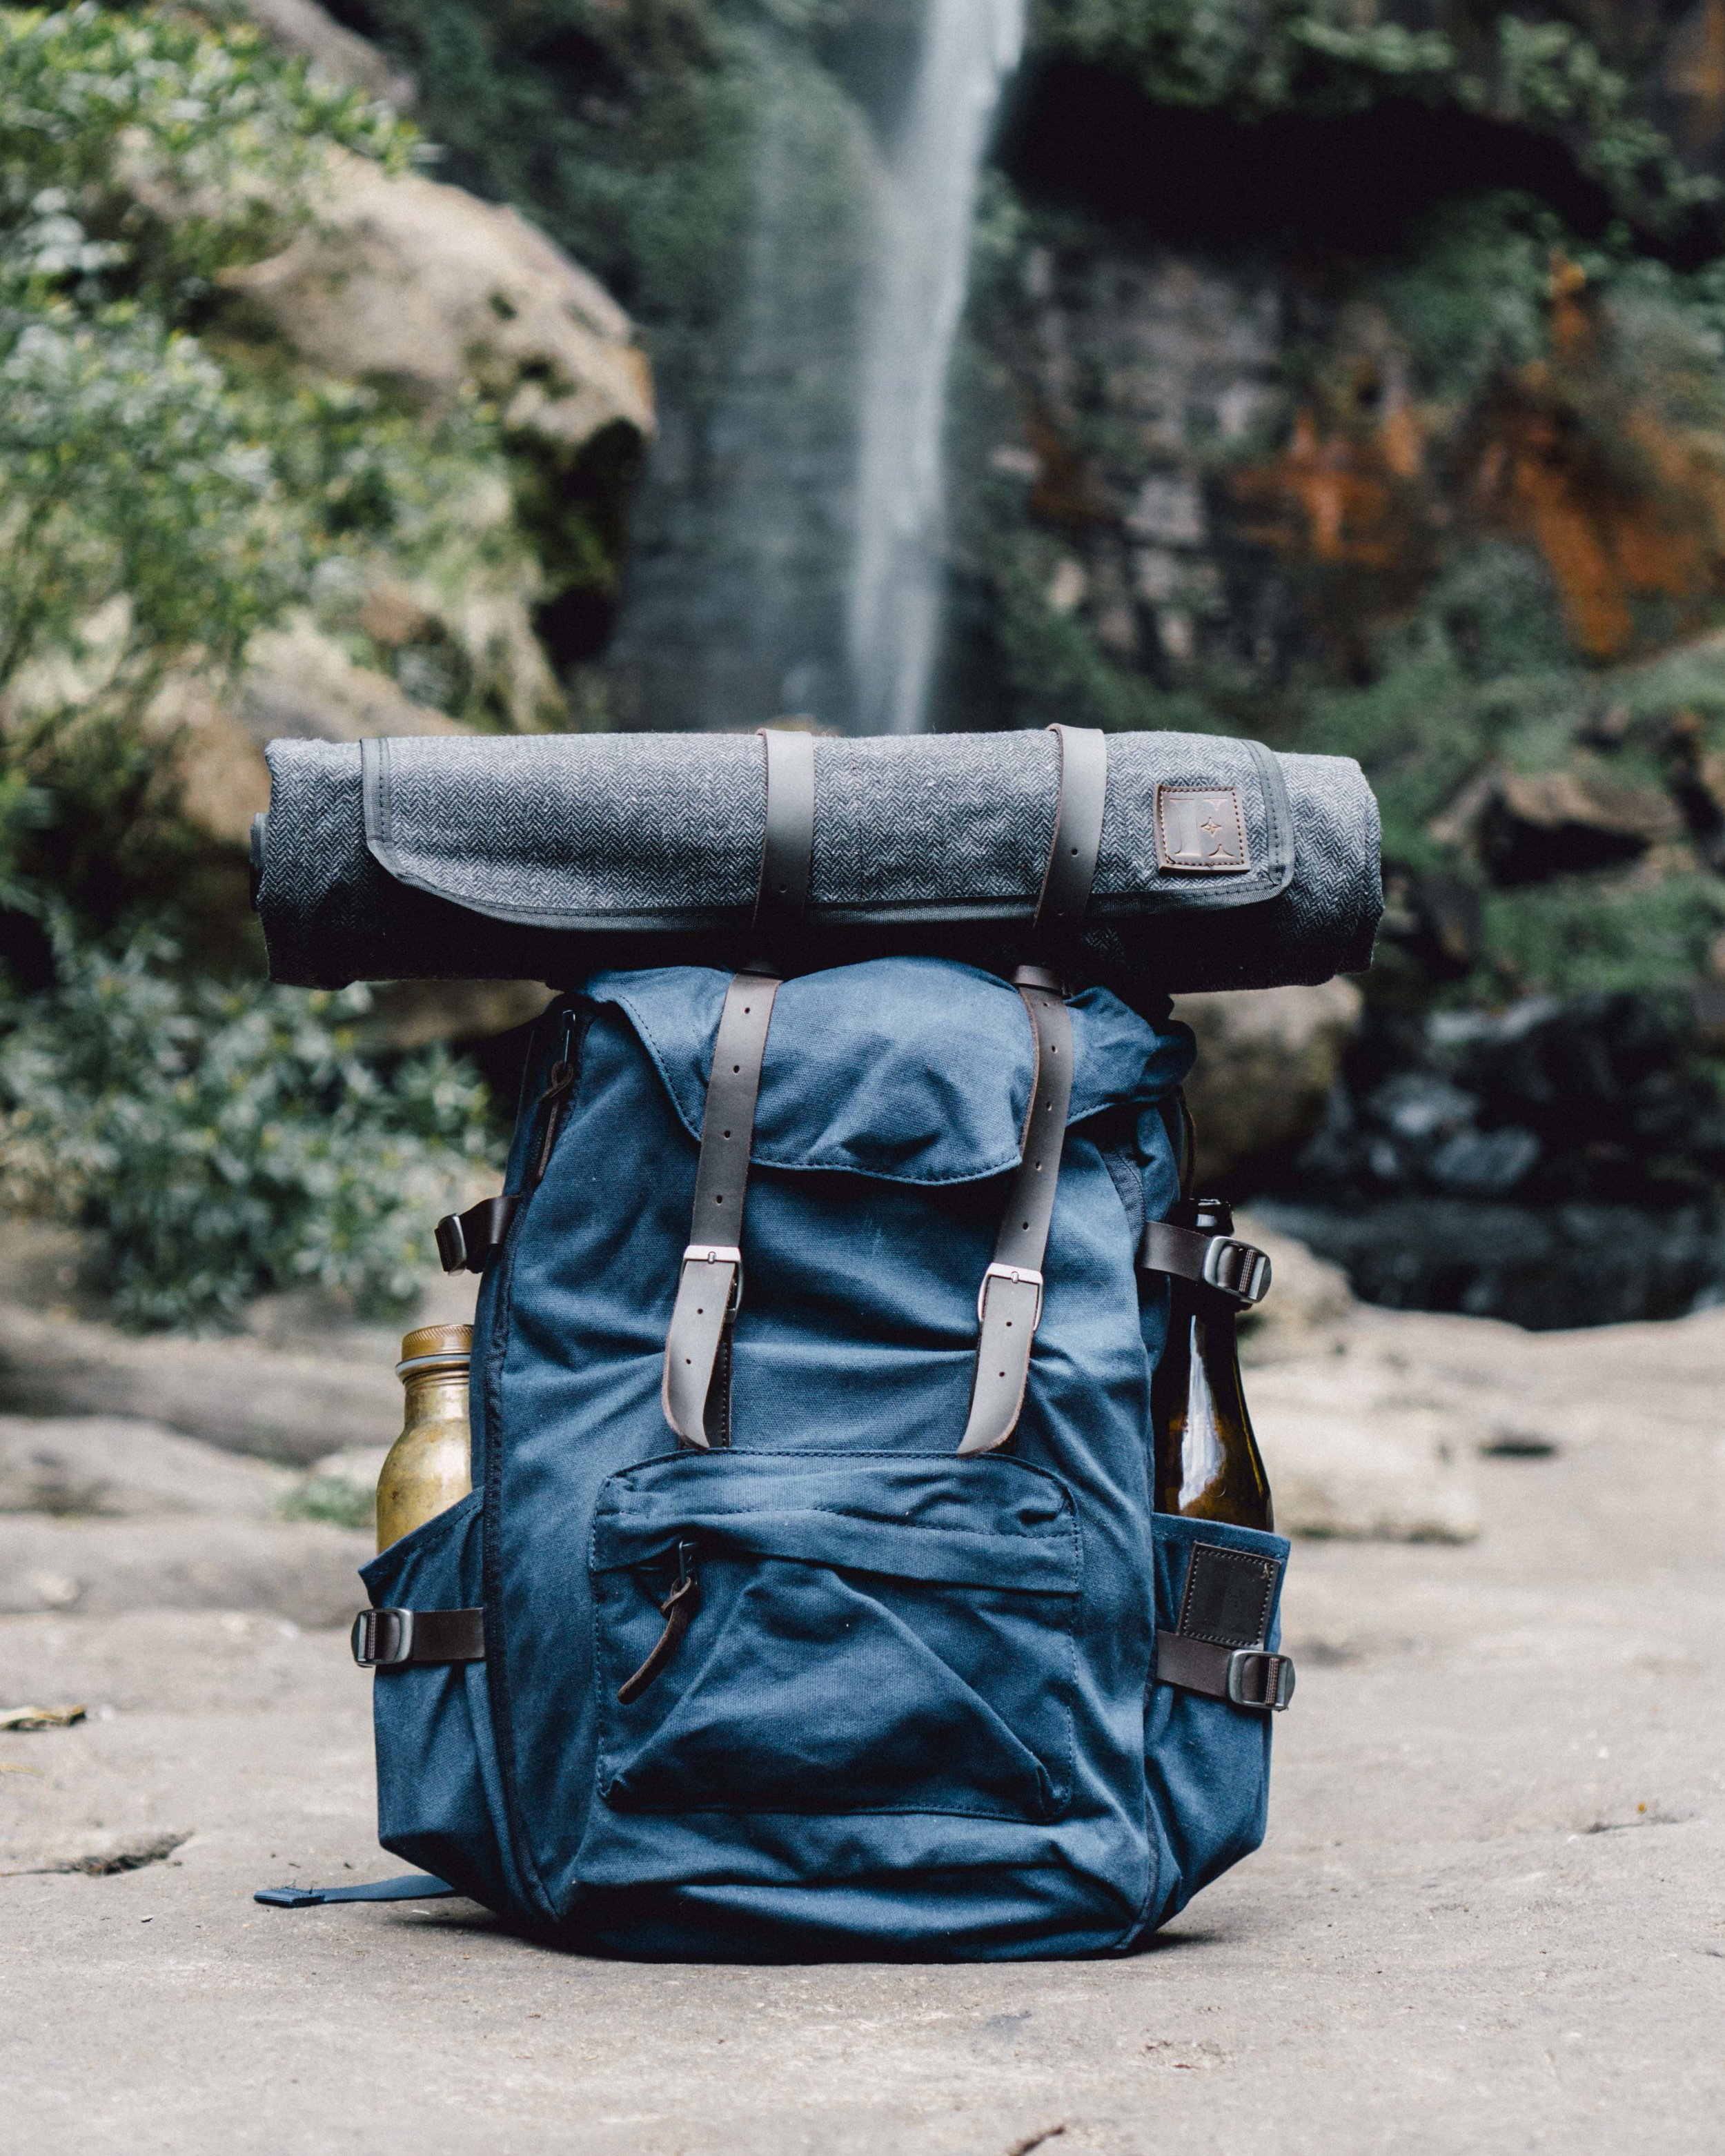 Excursion Co. - The ultimate picnic backpack bar none, no matter if its a short hike with some friends to the beach or a 3-hour tour in the bush. The Excursion Co Picnic bar will be your best friend simply because it will keep your beer cold and your cheese ripe! Check them out at https://excursionco.com!